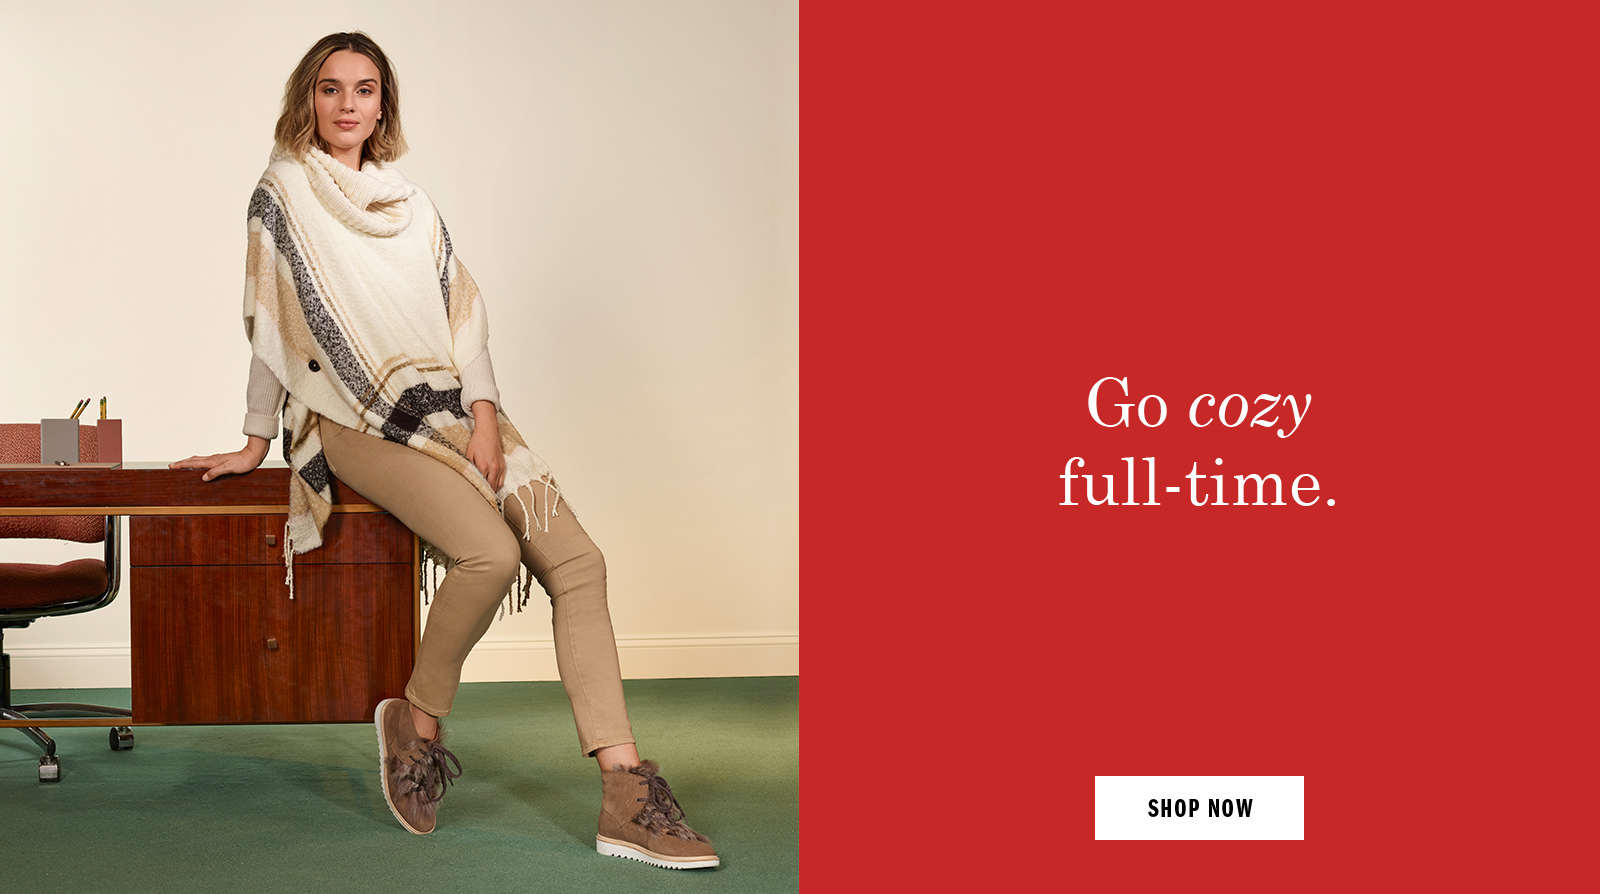 Go cozy full time - Shop Women's Shoes and Apparel